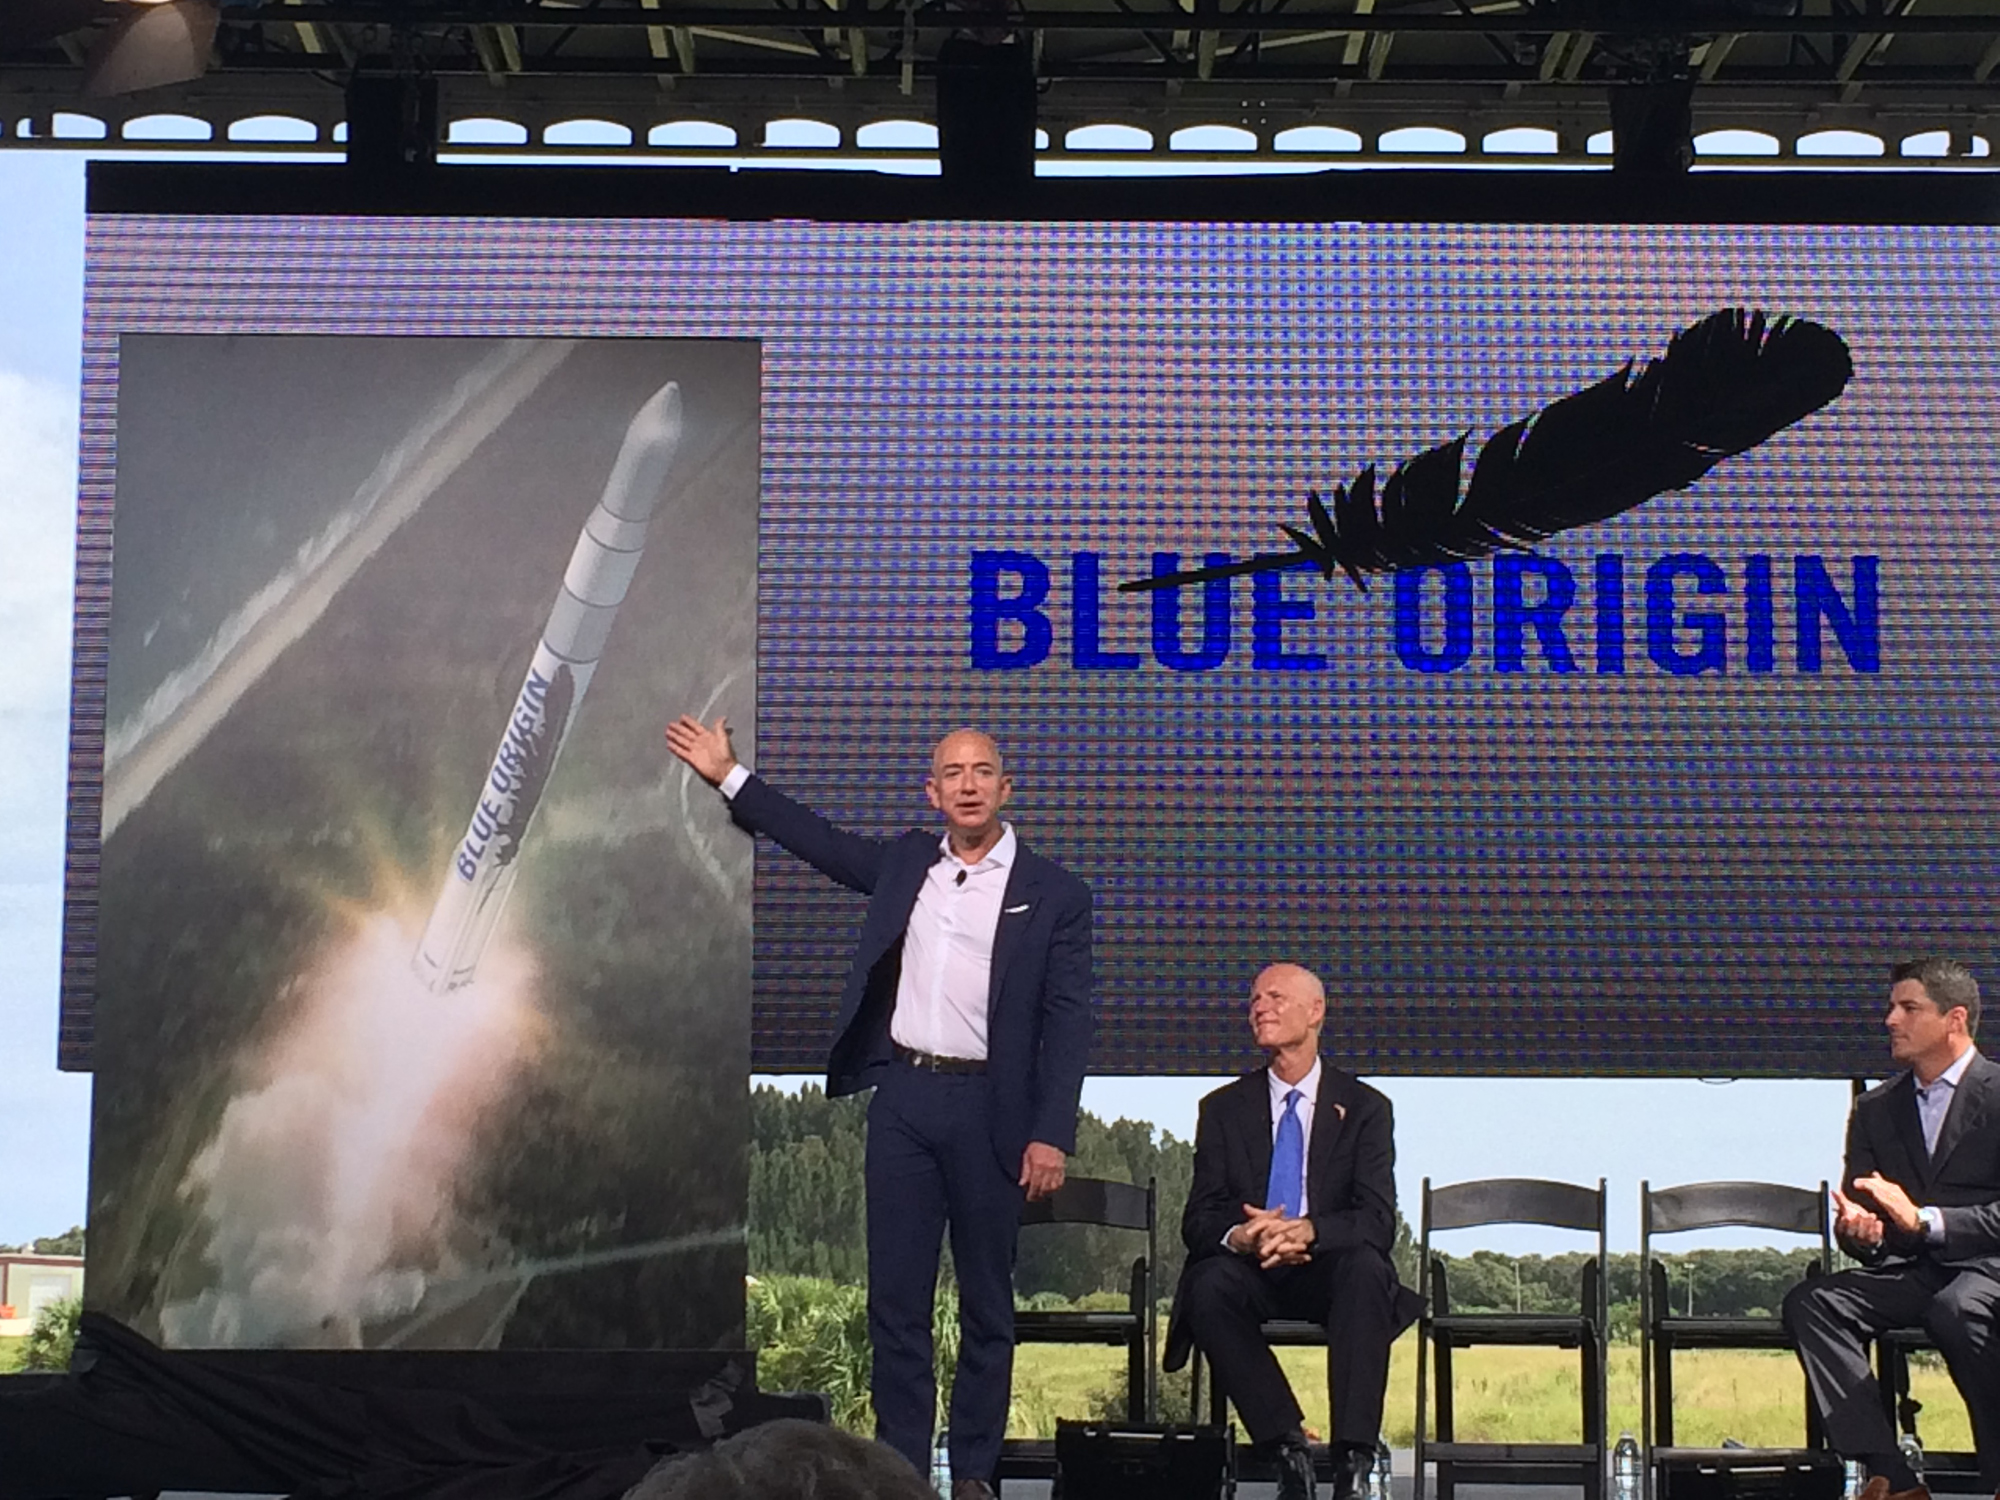 Jeff Bezos Announces Florida Launches for Blue Origin